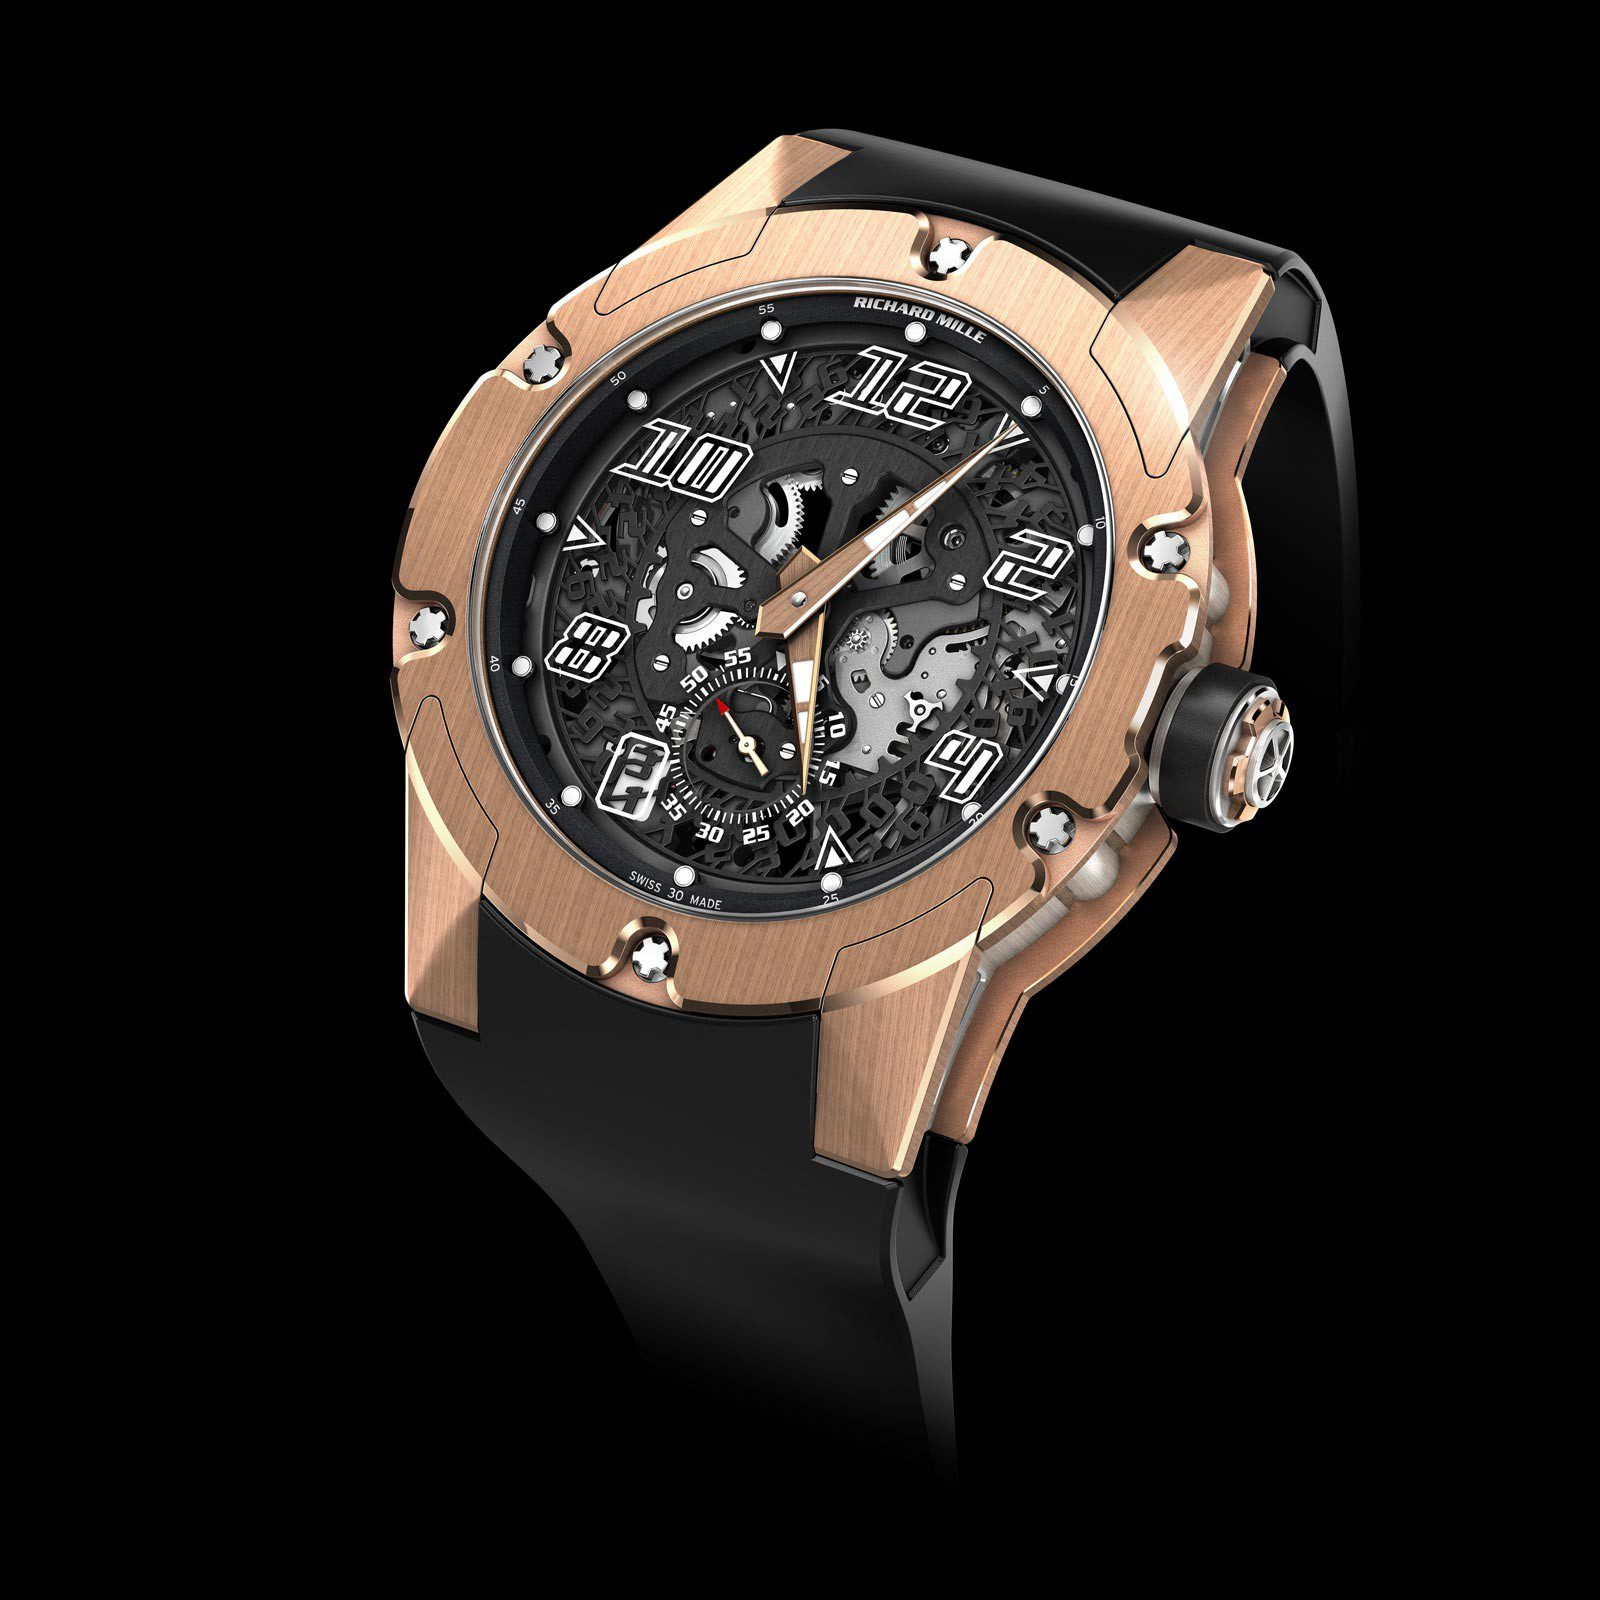 RICHARD MILLE RM 33-01 Automatic Replica Watch